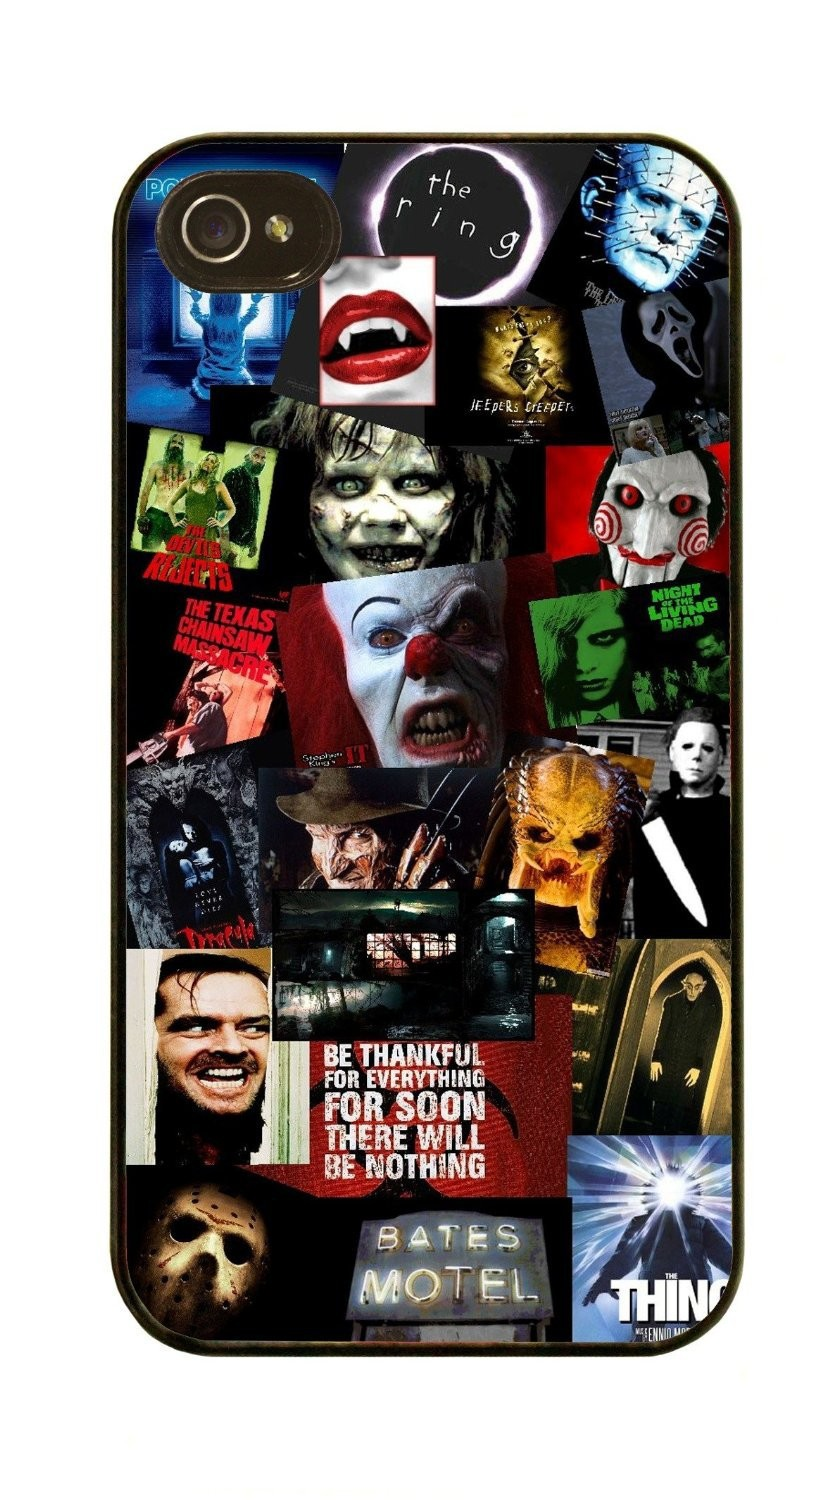 Horror Movie Collage Sherrys phone case for Samsung Galaxy s2 s3 s4 s5 mini s6 Note 2 3 4 5 iPhone 4s 5s 5c 6 6s plus iPod 4 5 6(China (Mainland))